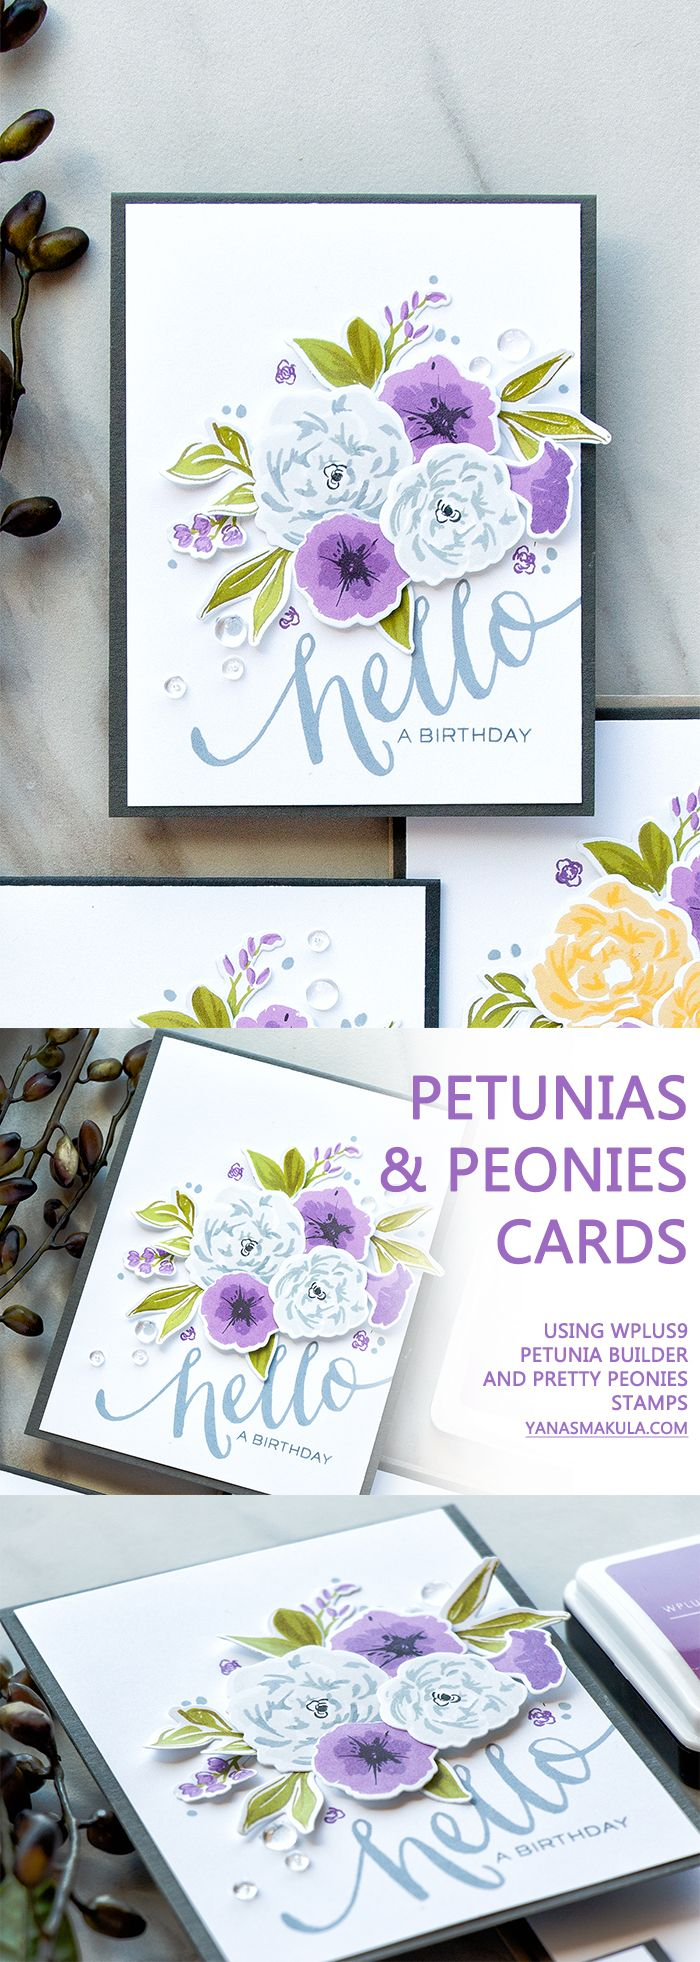 Combine hand stamped Petunias and Peonies to create beautiful Birthday Cards. Using wplus9  Petunia Builder and Pretty Peonies stamps. Visit http://www.yanasmakula.com/?p=57432 for more details